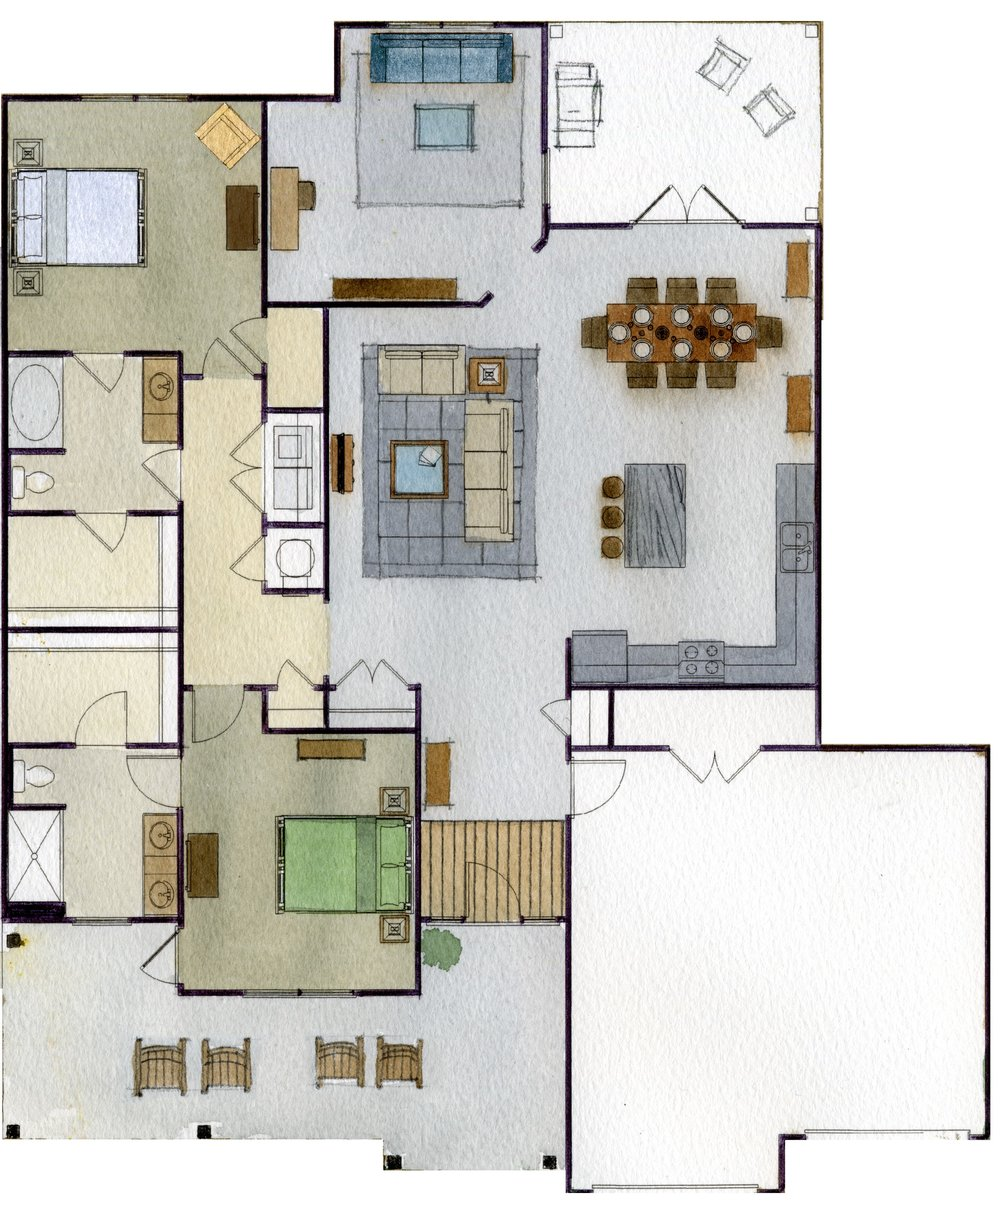 2 Bed Rm floorplan in duplex.jpg